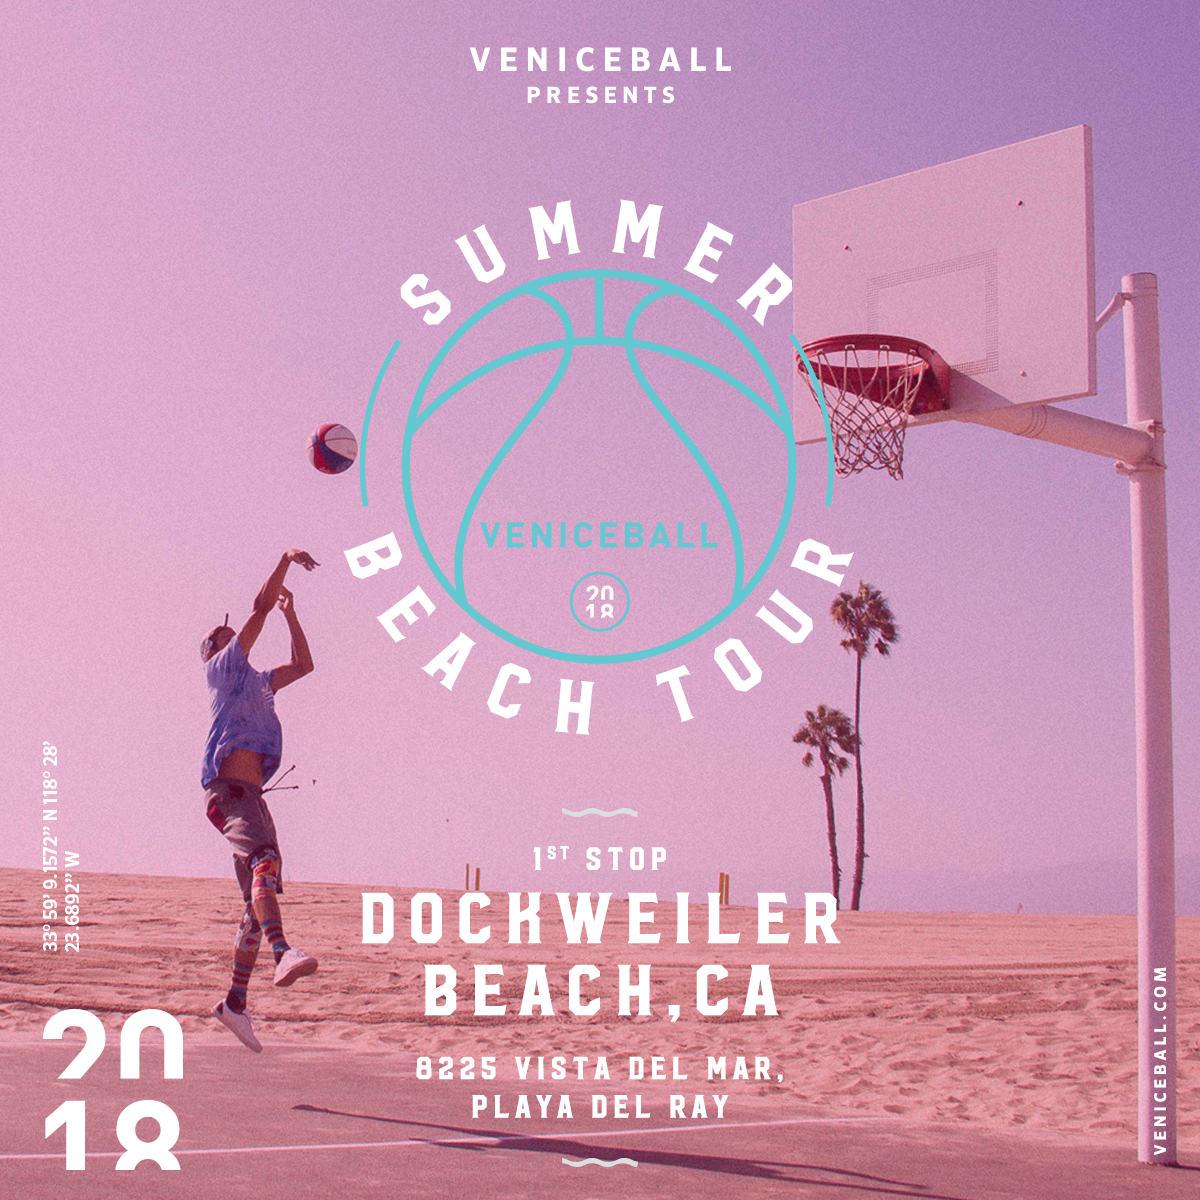 Veniceball Beach summer tour kicks off @ Dockweilwer Beach 6/14